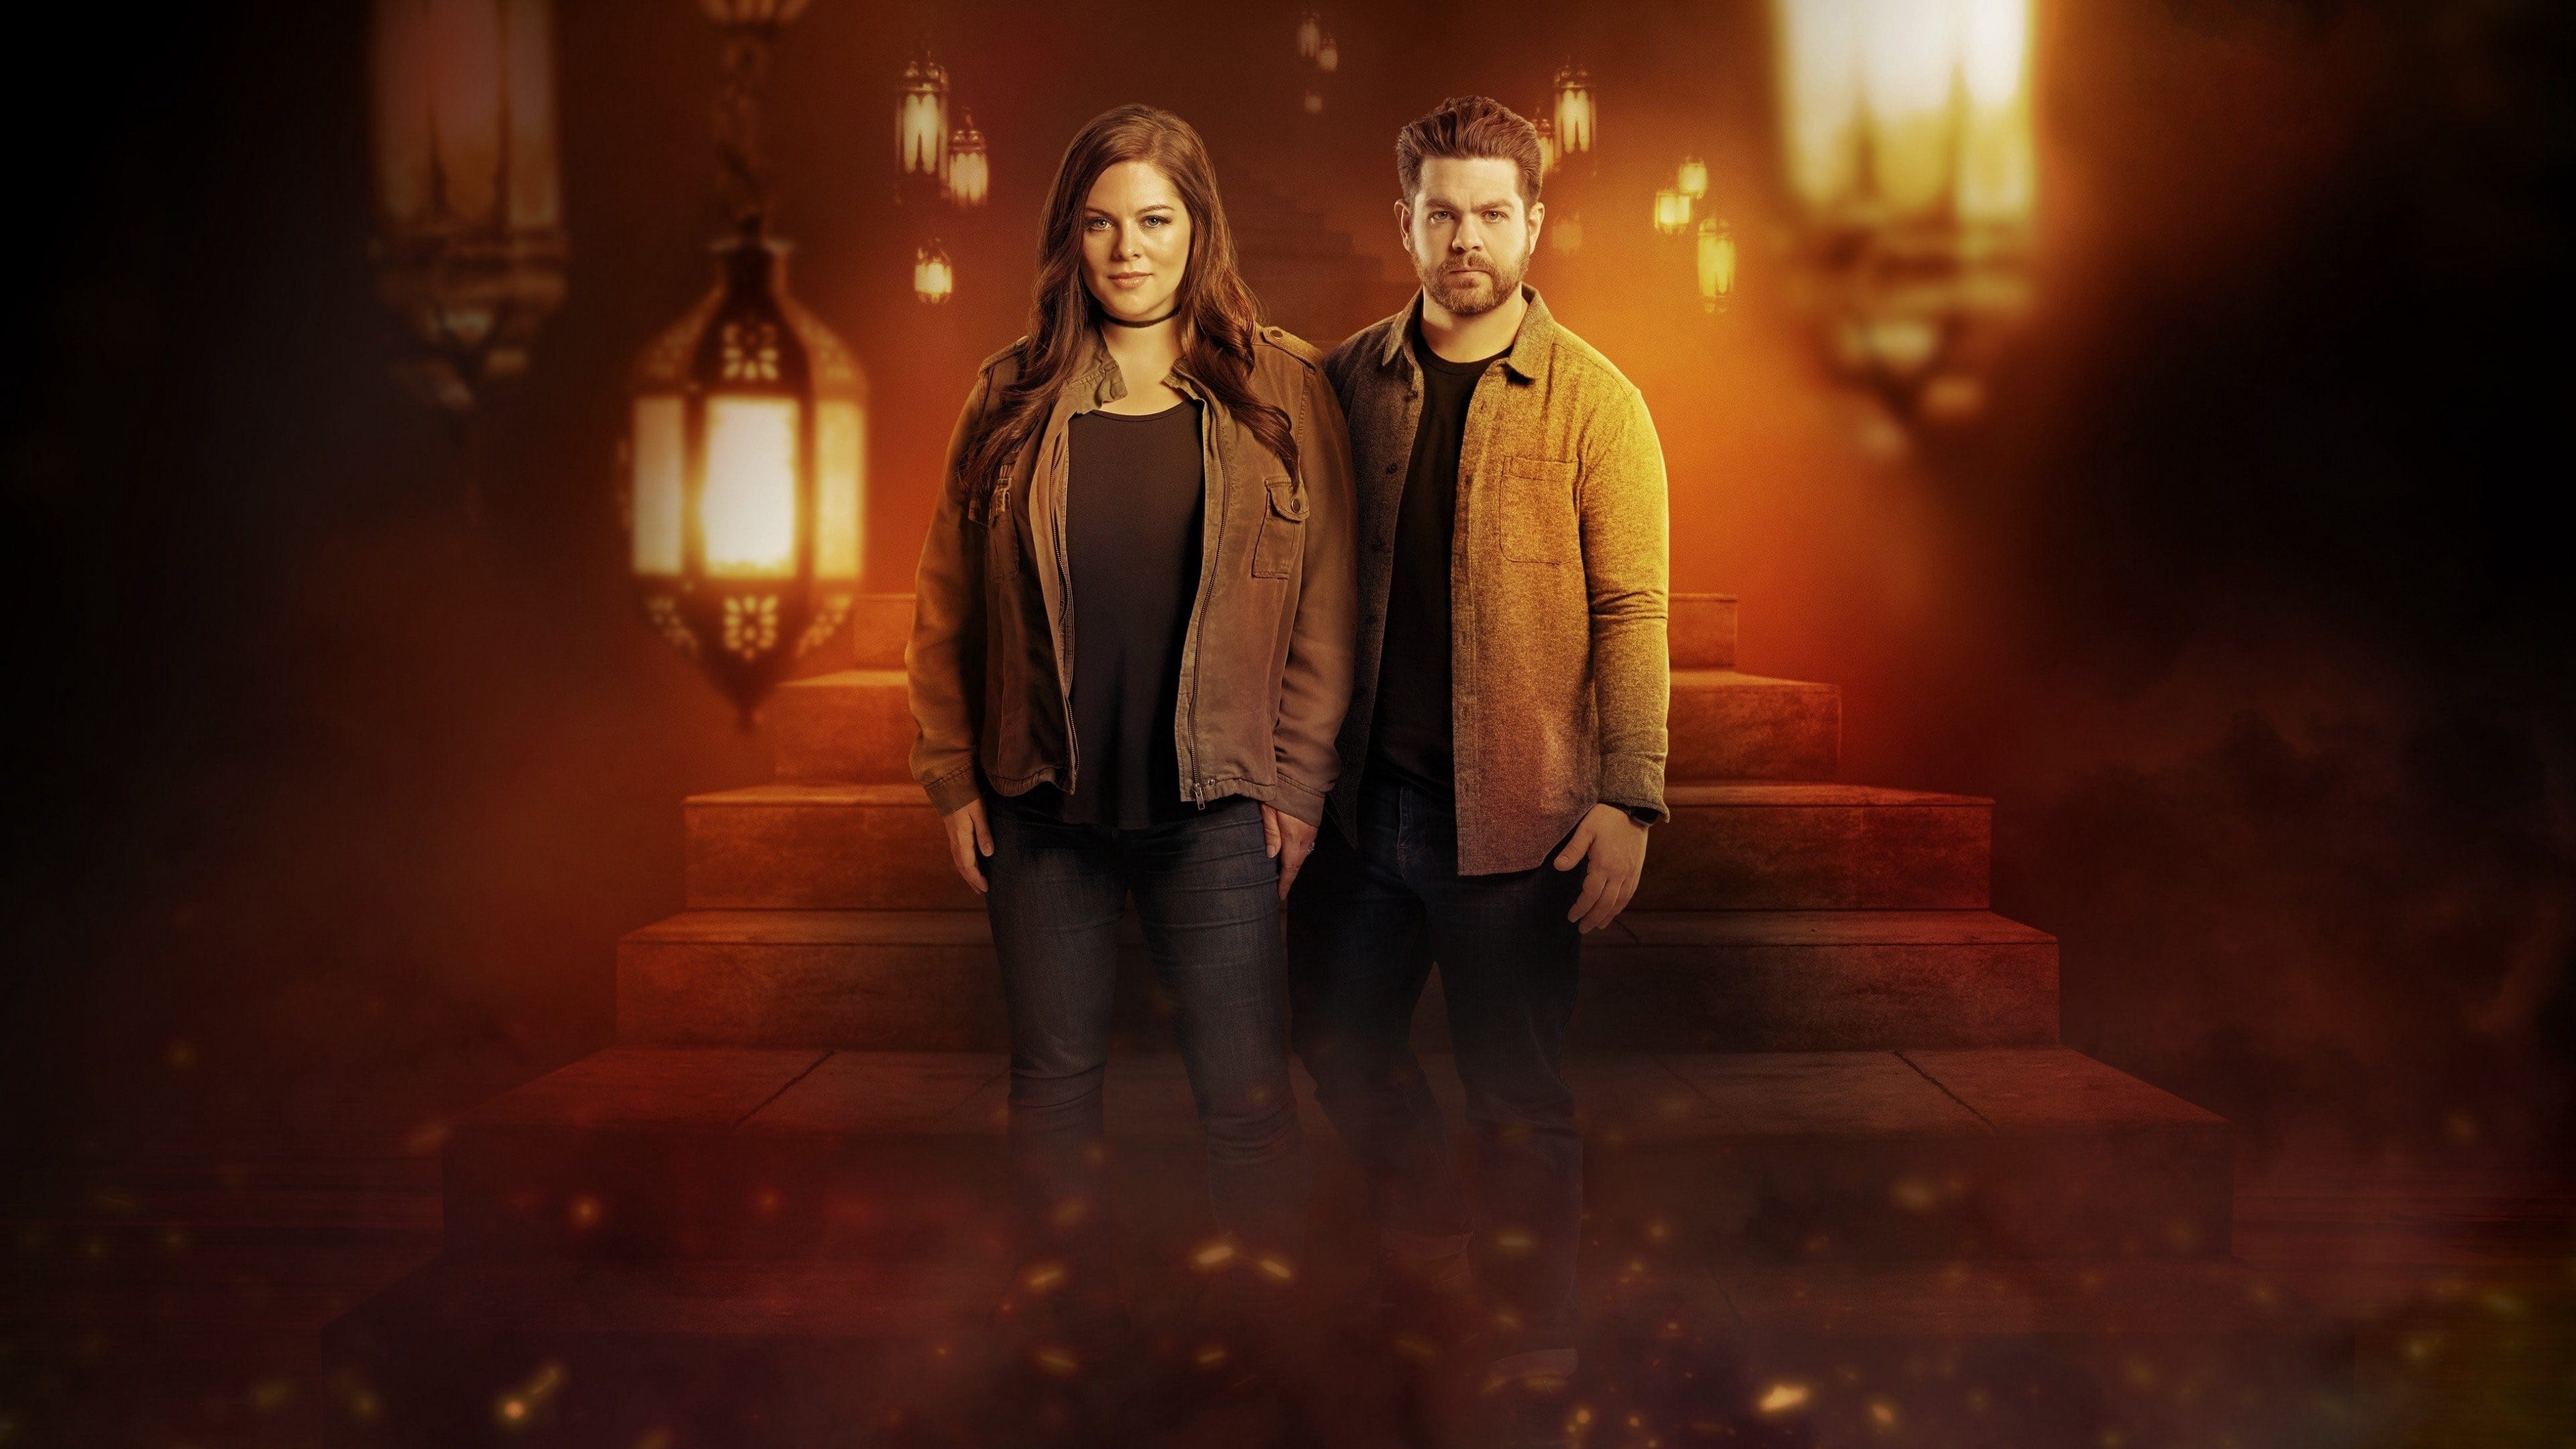 watch house season 2 online for free